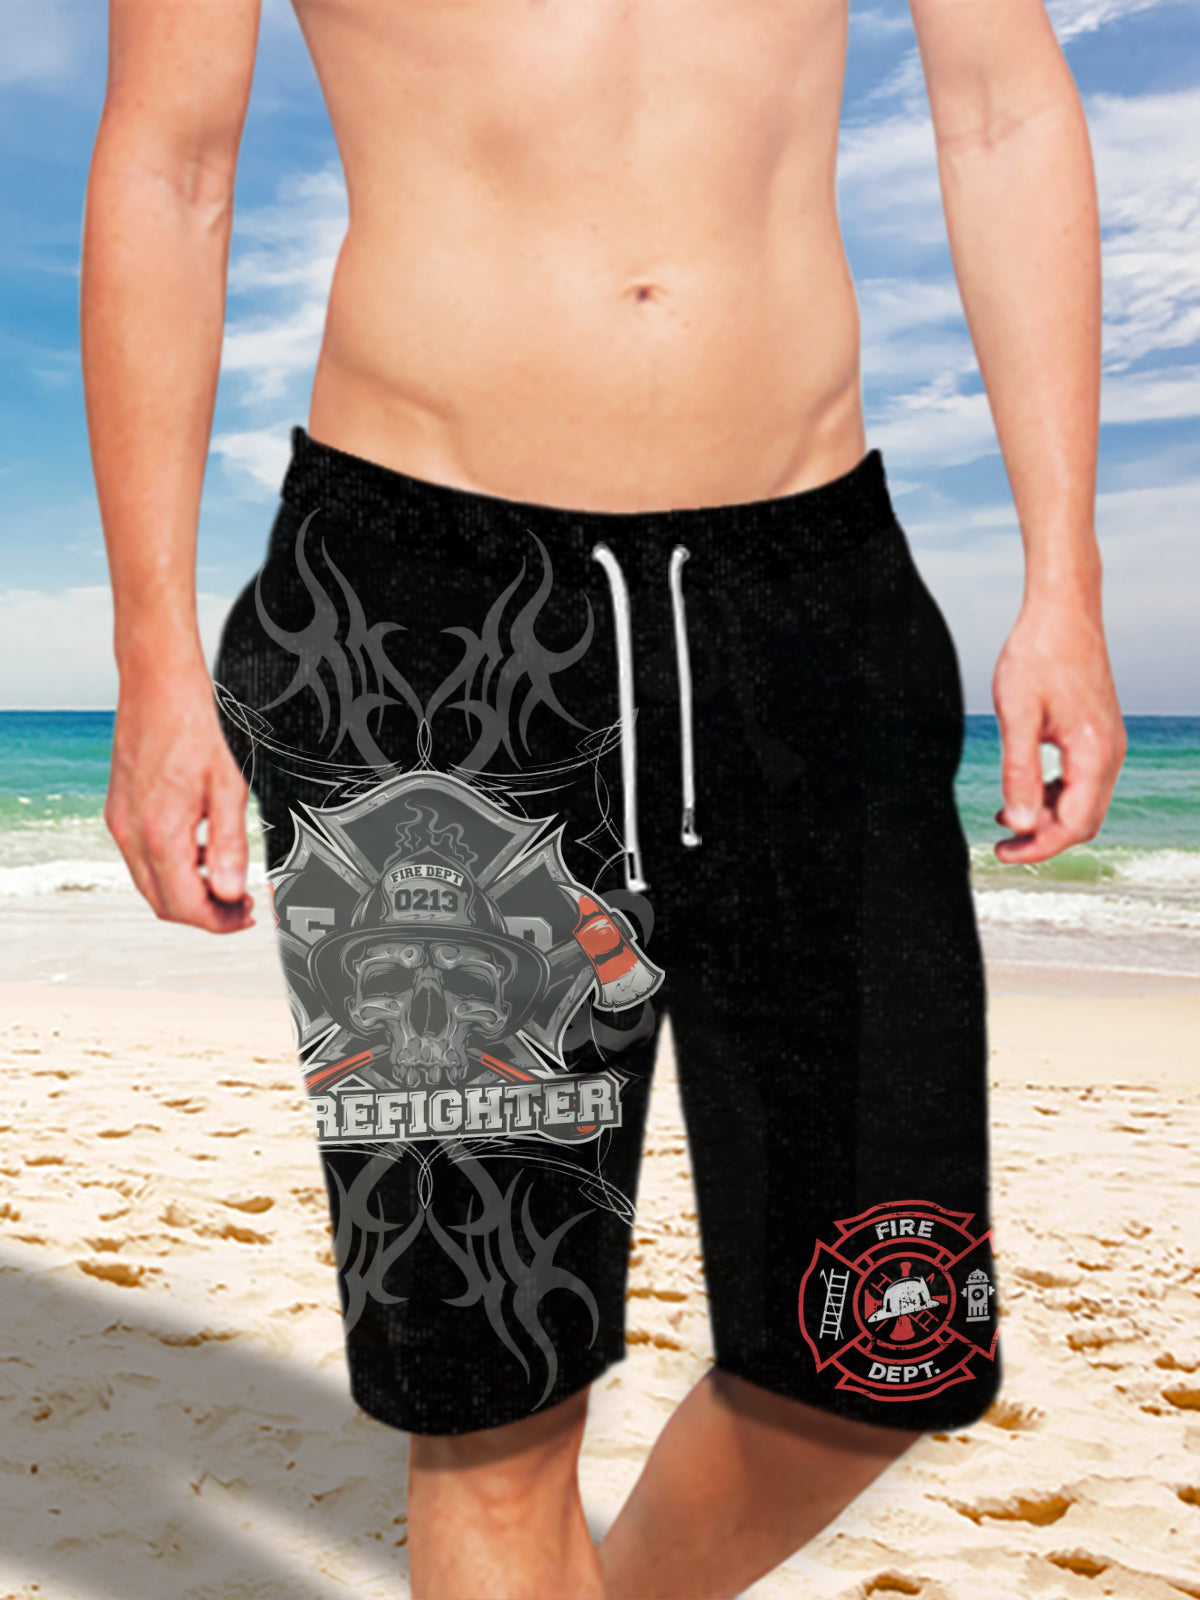 Ultra-light Drawstring Shorts for Men - FIRE DEPT. Firefighter 003